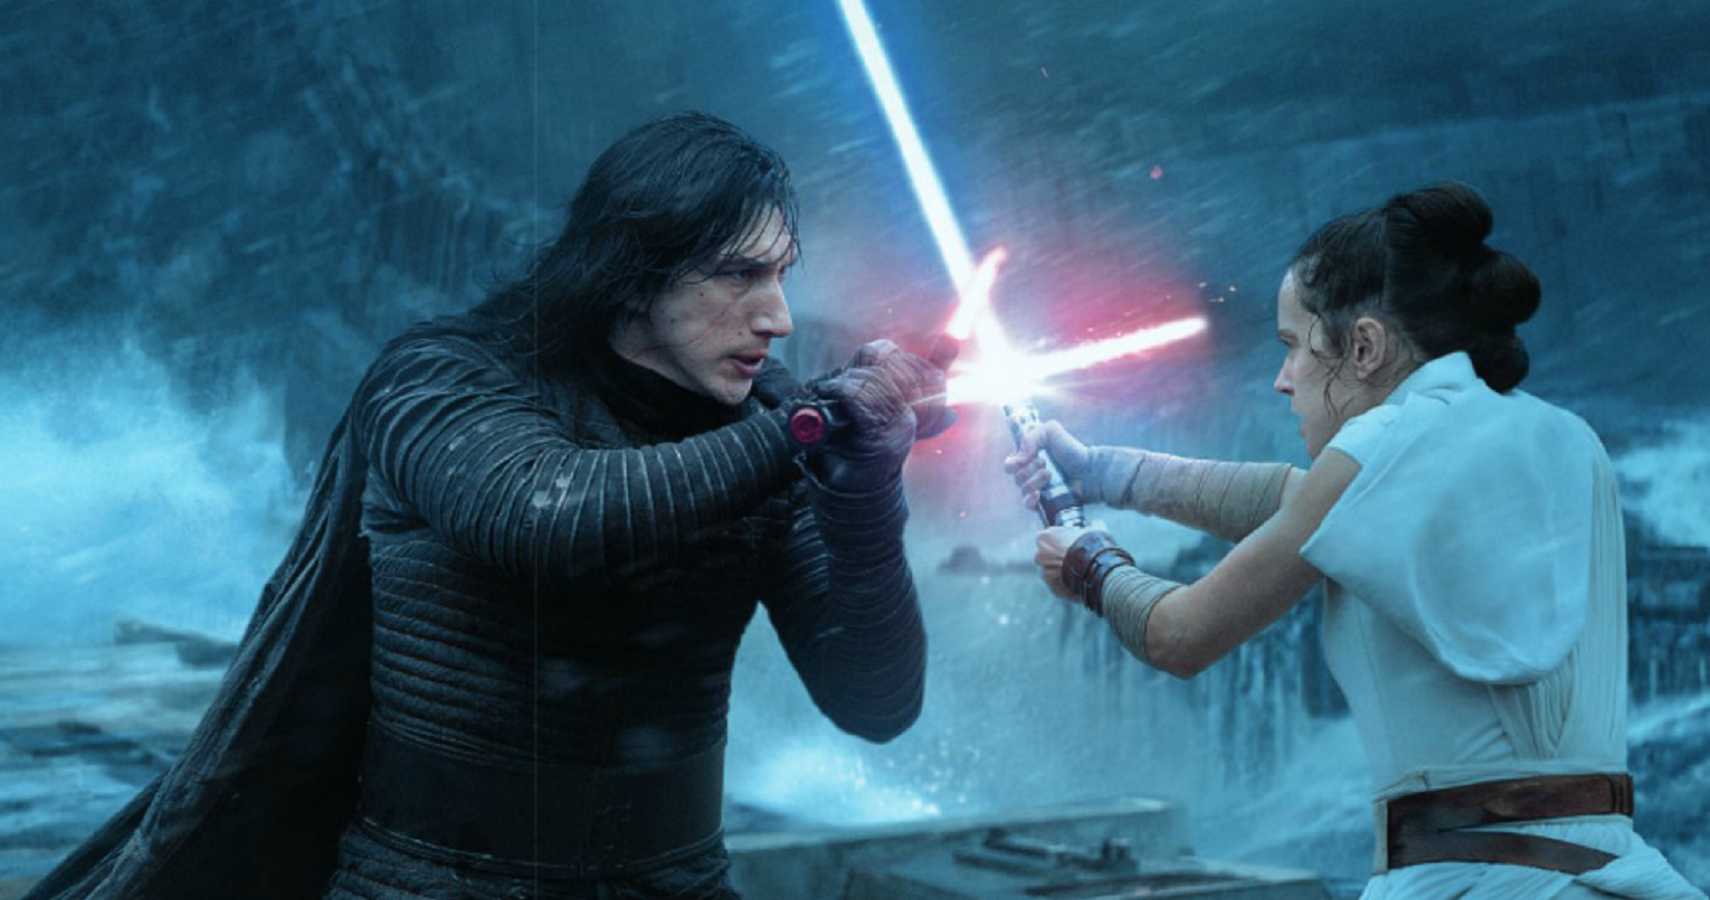 J.J. Abrams Is Missing The Point About Why Star Wars Failed